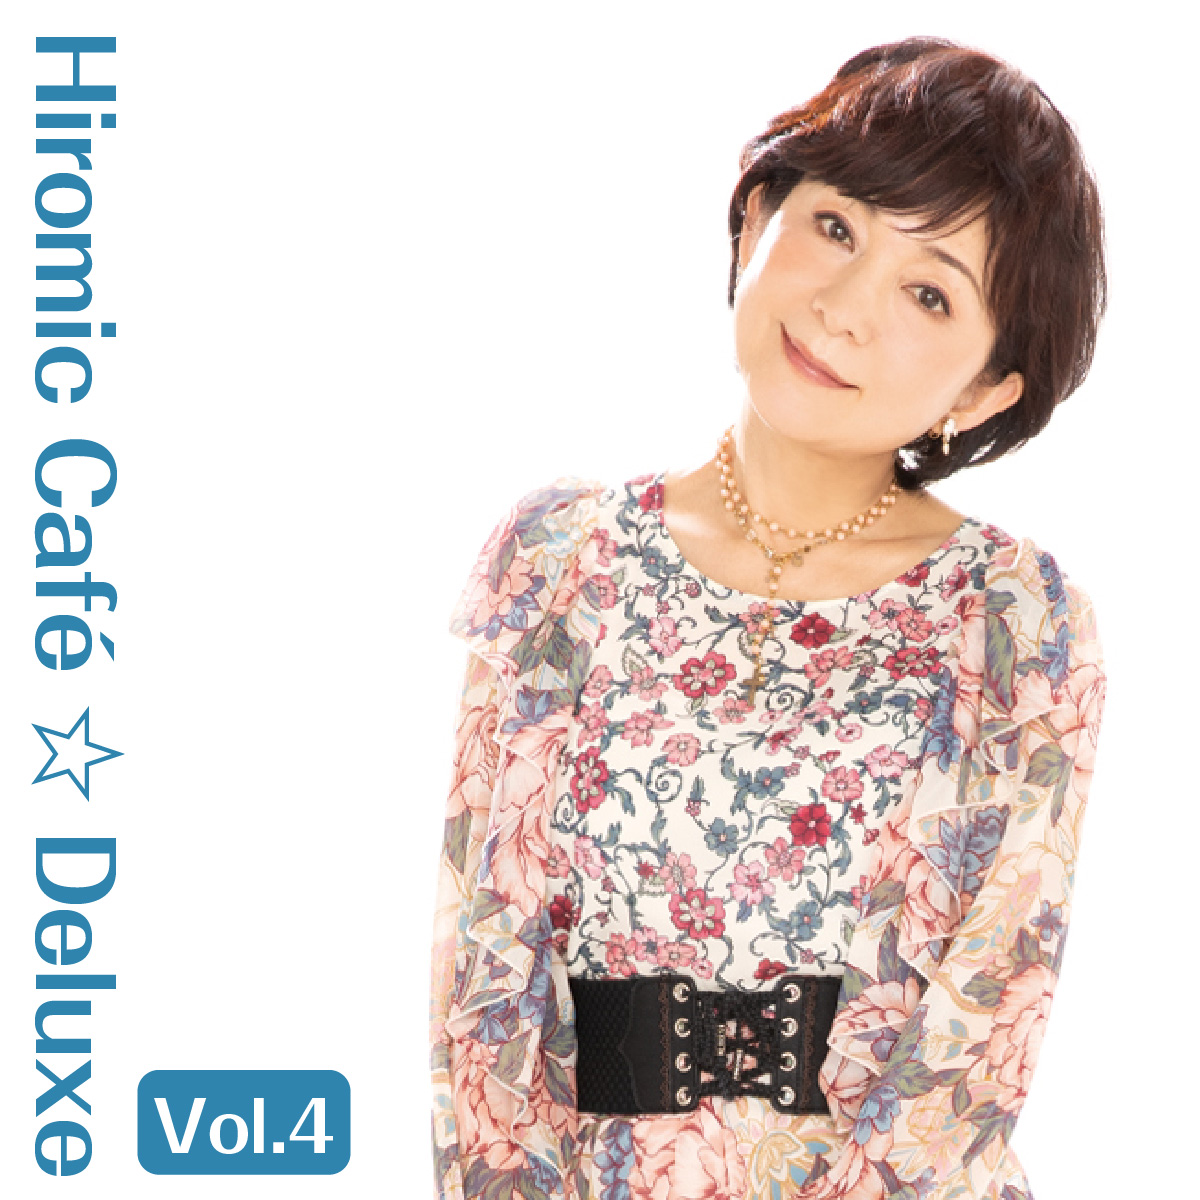 Hiromic Café ☆ Deluxe Vol.4